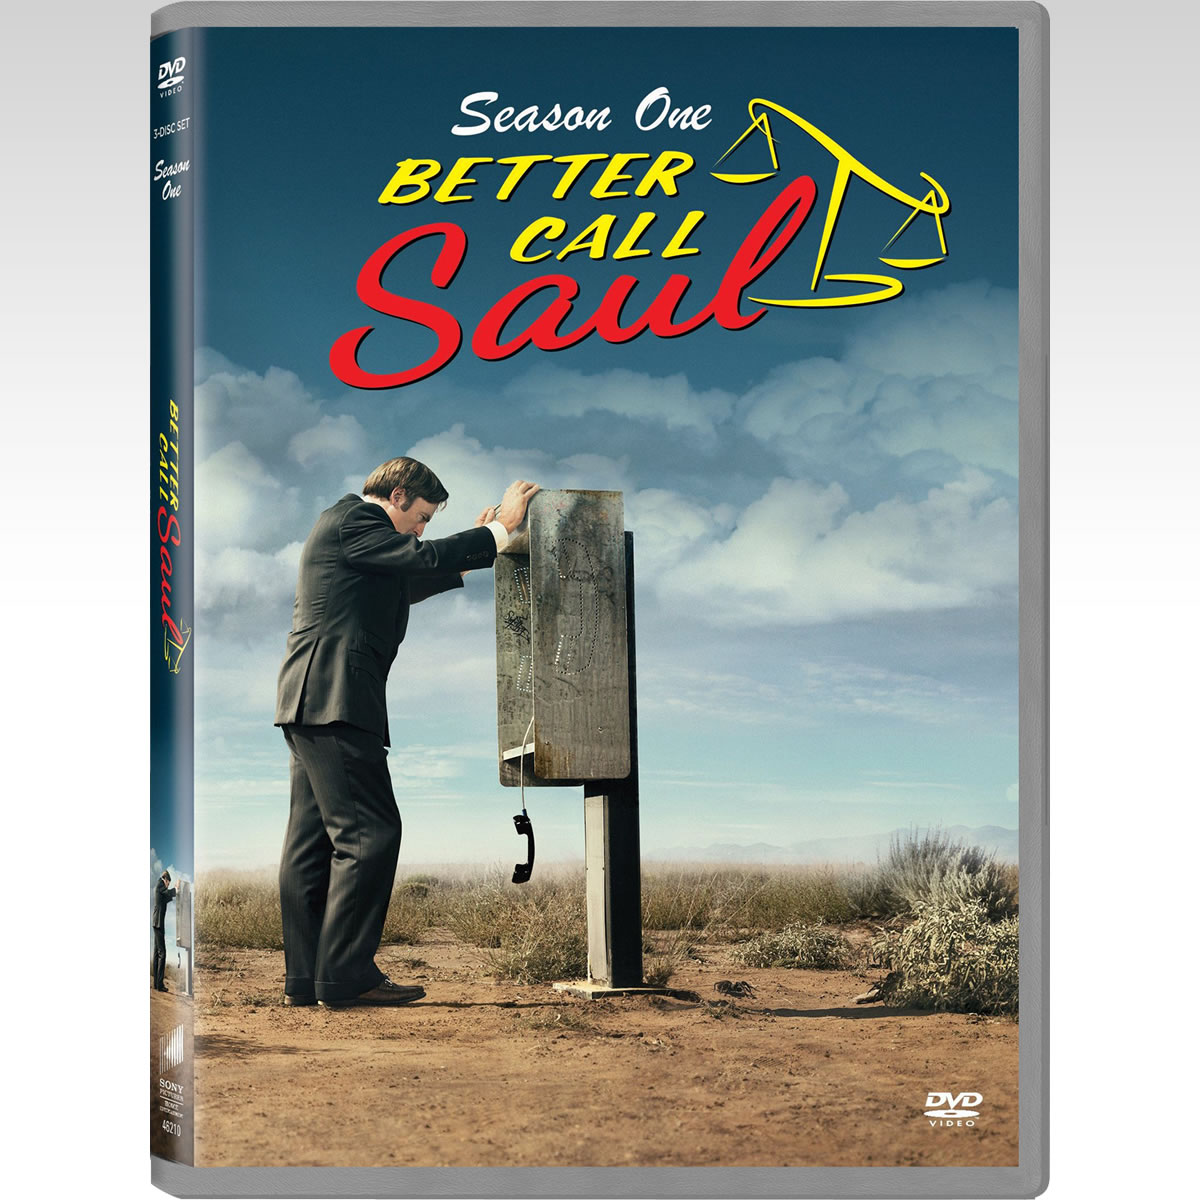 BETTER CALL SAUL SEASON 1 -  BETTER CALL SAUL 1η ΠΕΡΙΟΔΟΣ (3 DVDs)